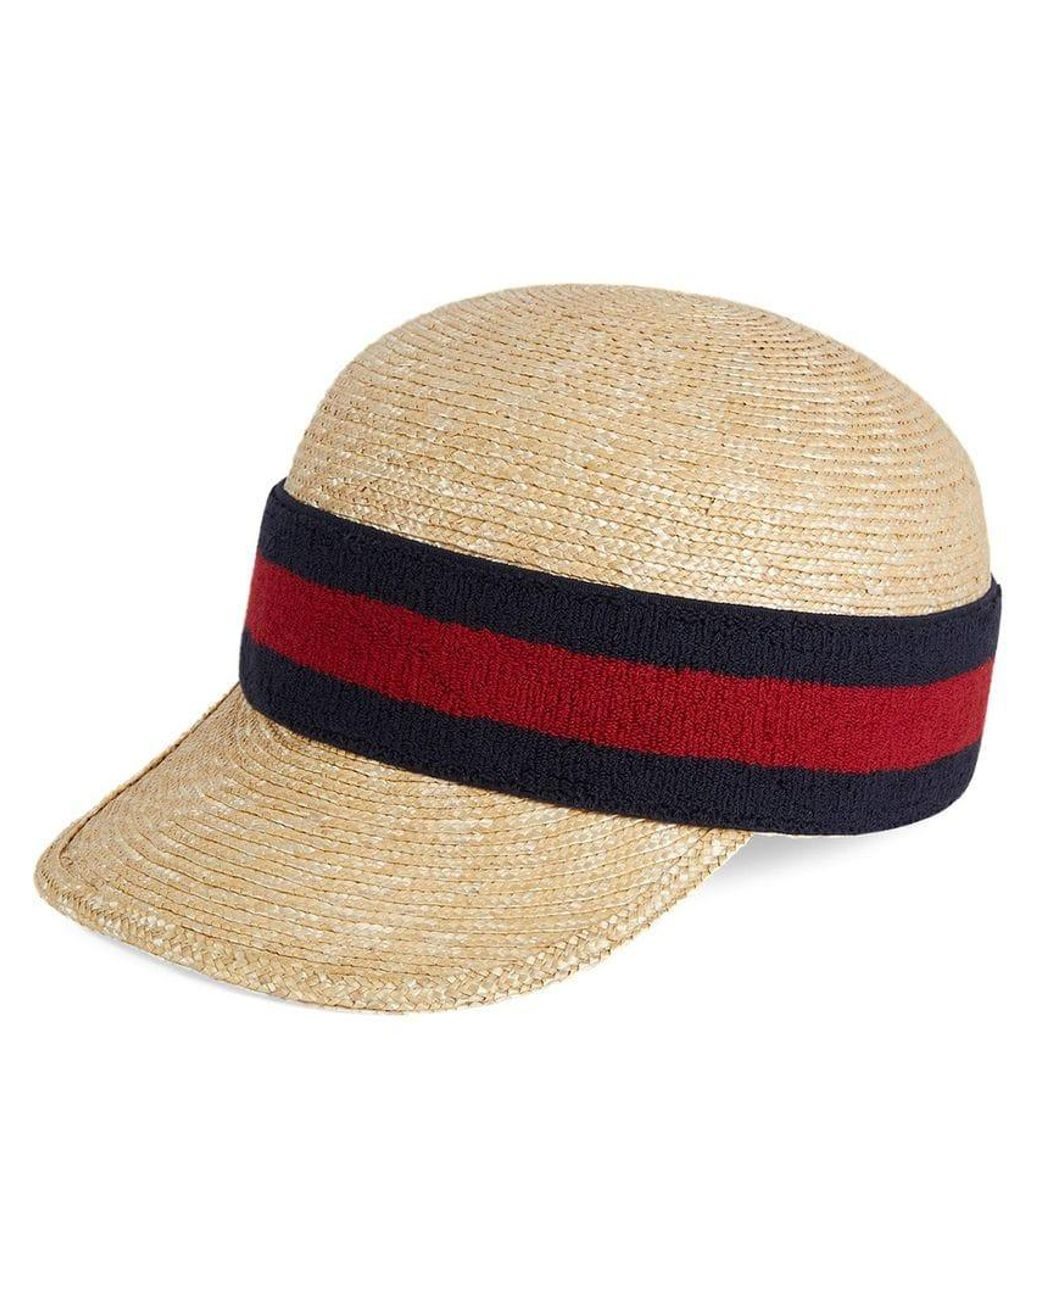 a5d08bc4c7e58 Gucci Hat With Web for Men - Lyst